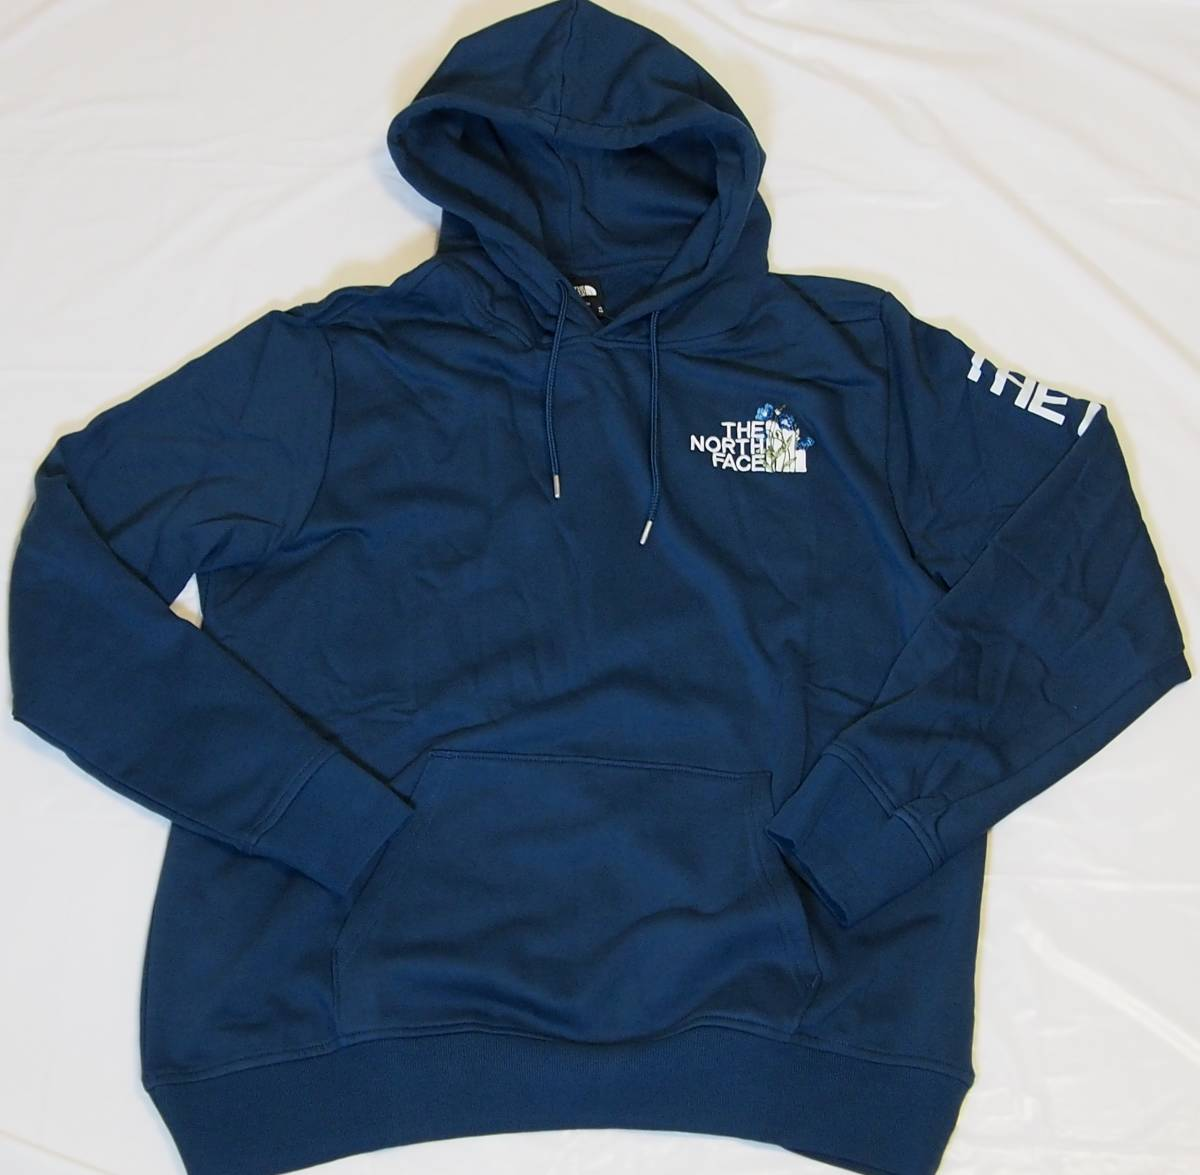 【USA購入、未使用タグ付】ノースフェイス パーカー XL ブルー系 The North Face Himalayan Bottle Source Pullover Hoodie_画像1